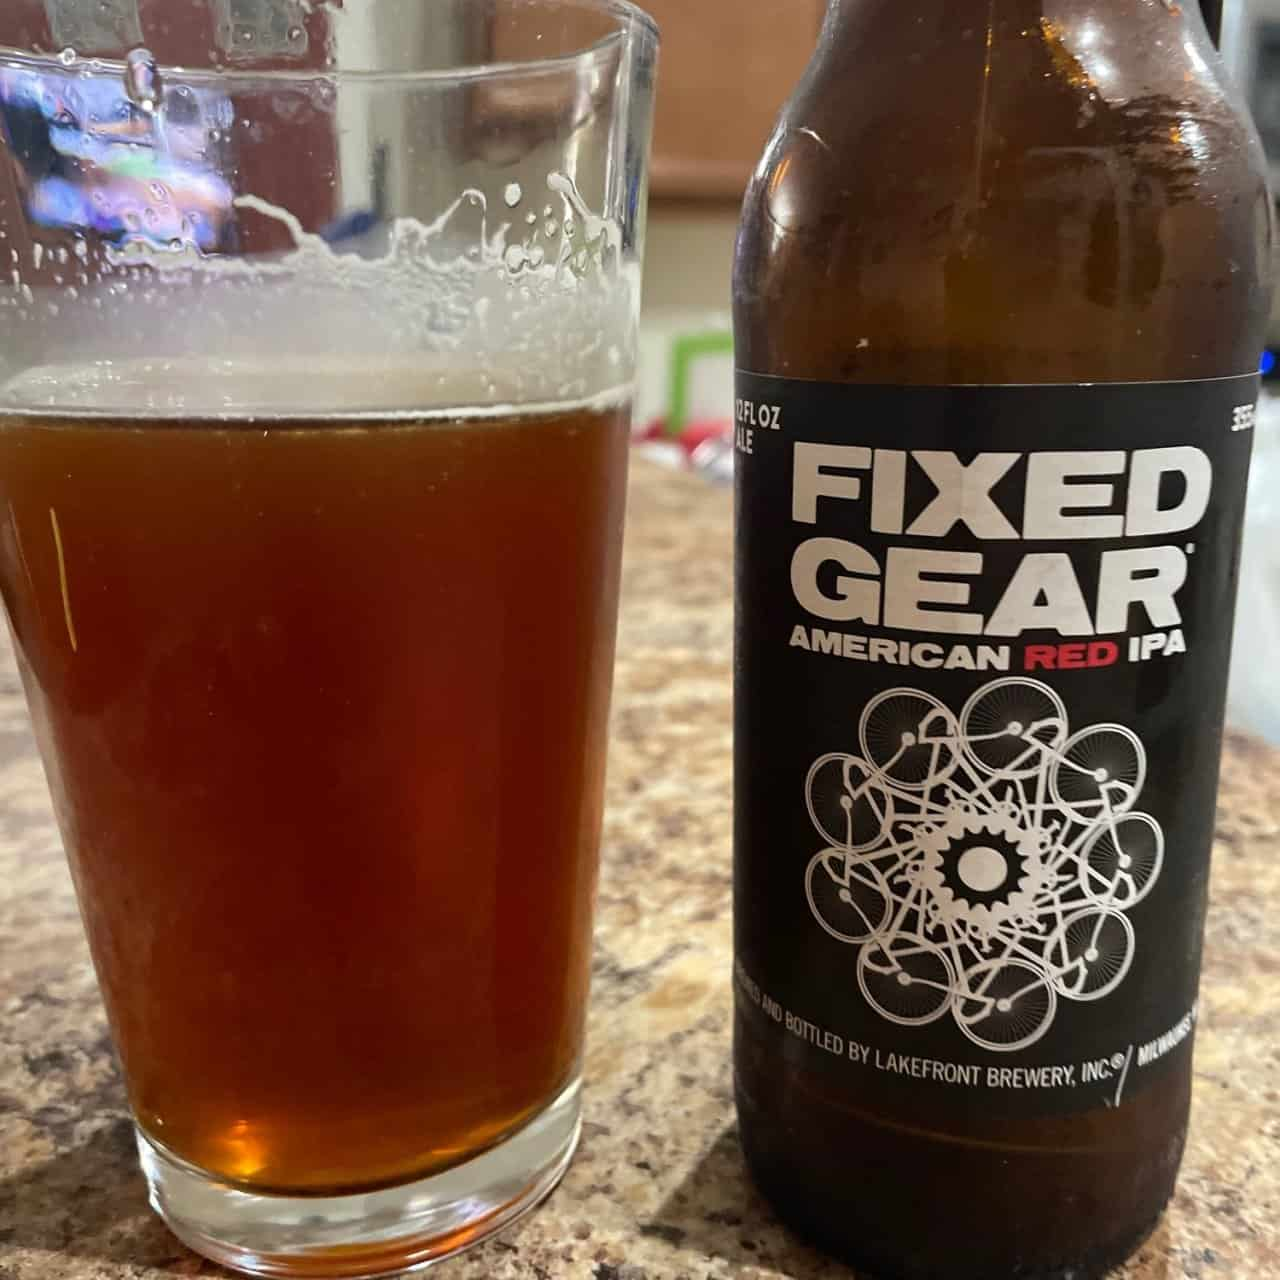 Fixed Gear Red IPA